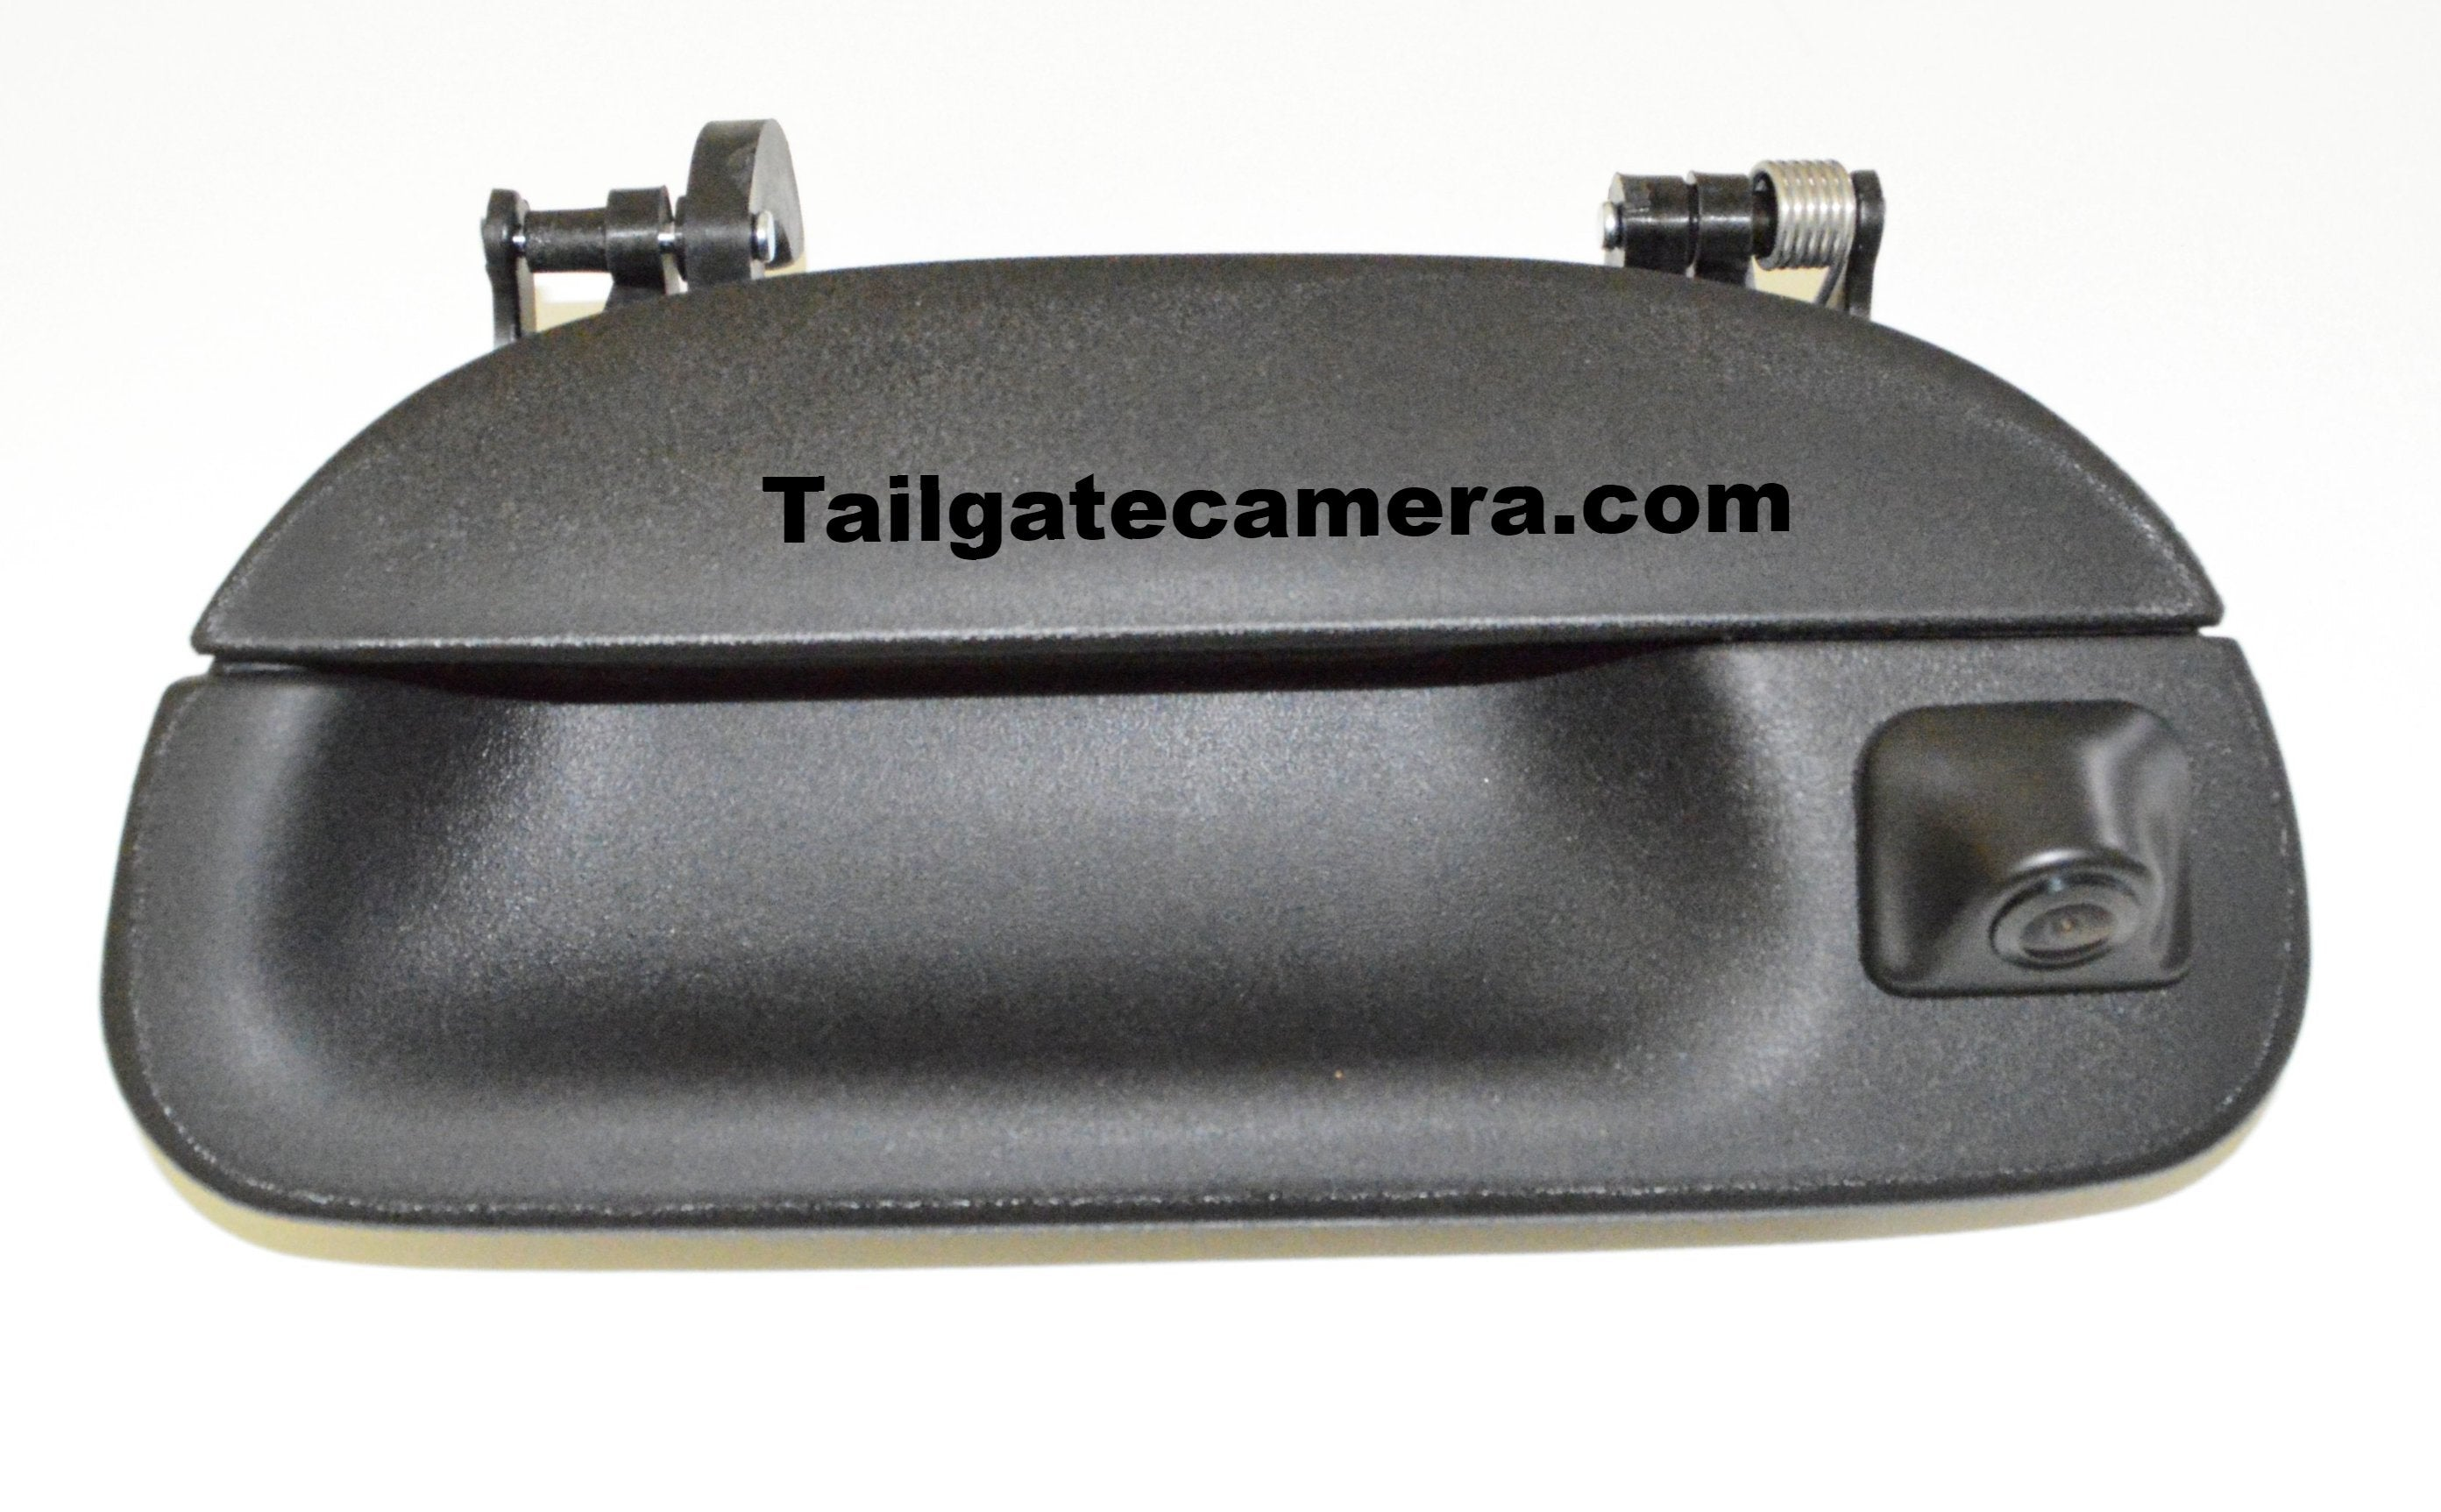 Tailgate Handle Backup Rear View Camera For Heritage Ford F Series. Tailgate Handle Backup Rear View Camera For Heritage Ford F Series Truck 9707. Ford. 2008 Ford F 250 Tailgate Parts Diagram At Scoala.co